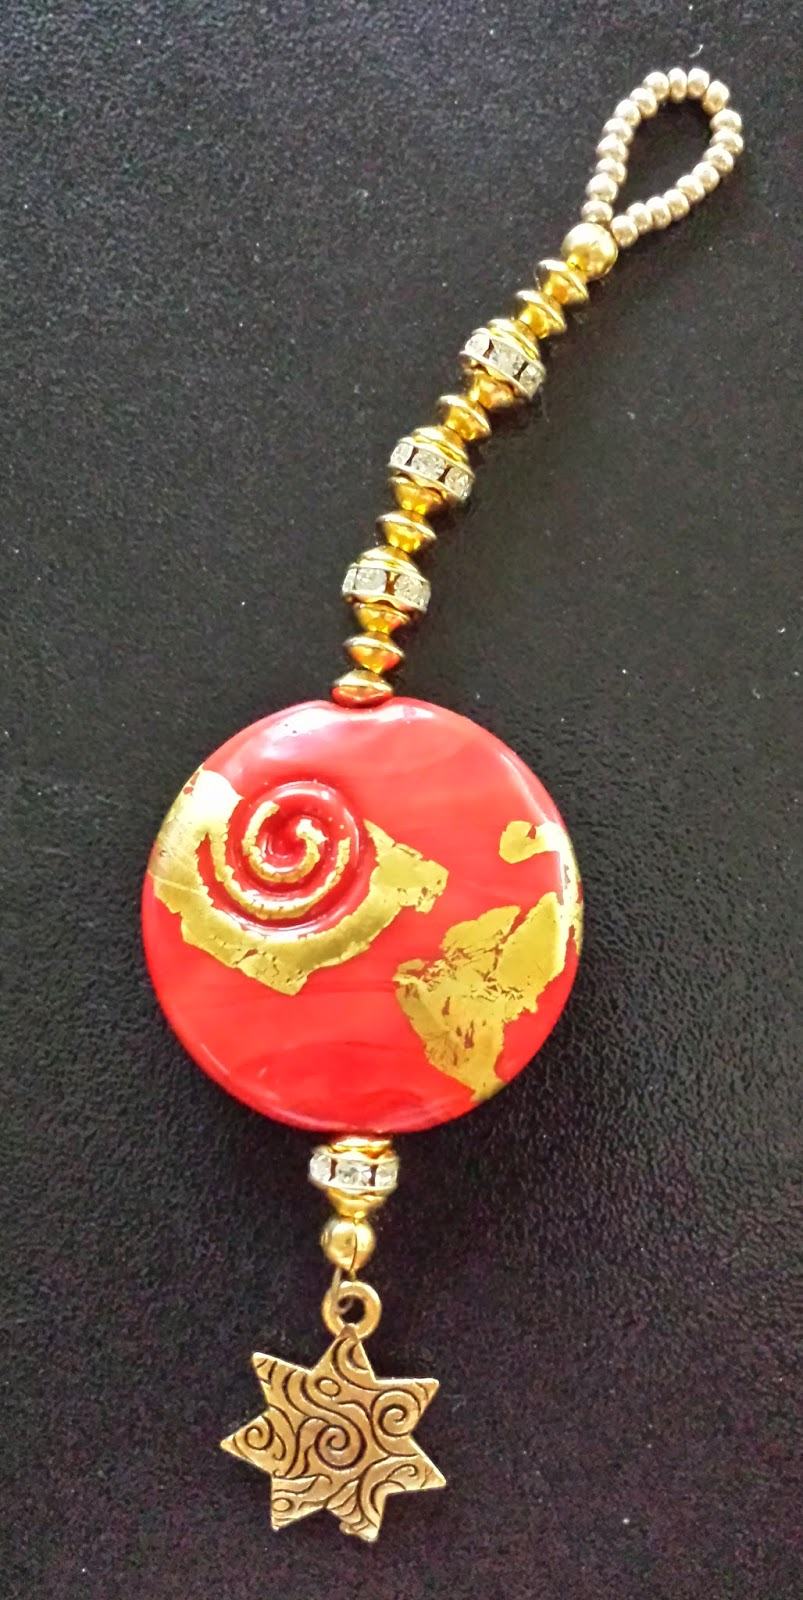 2014 Holiday Ornament Exchange, red lentil with gold leaf by Susan Kenedy of Sue Beads